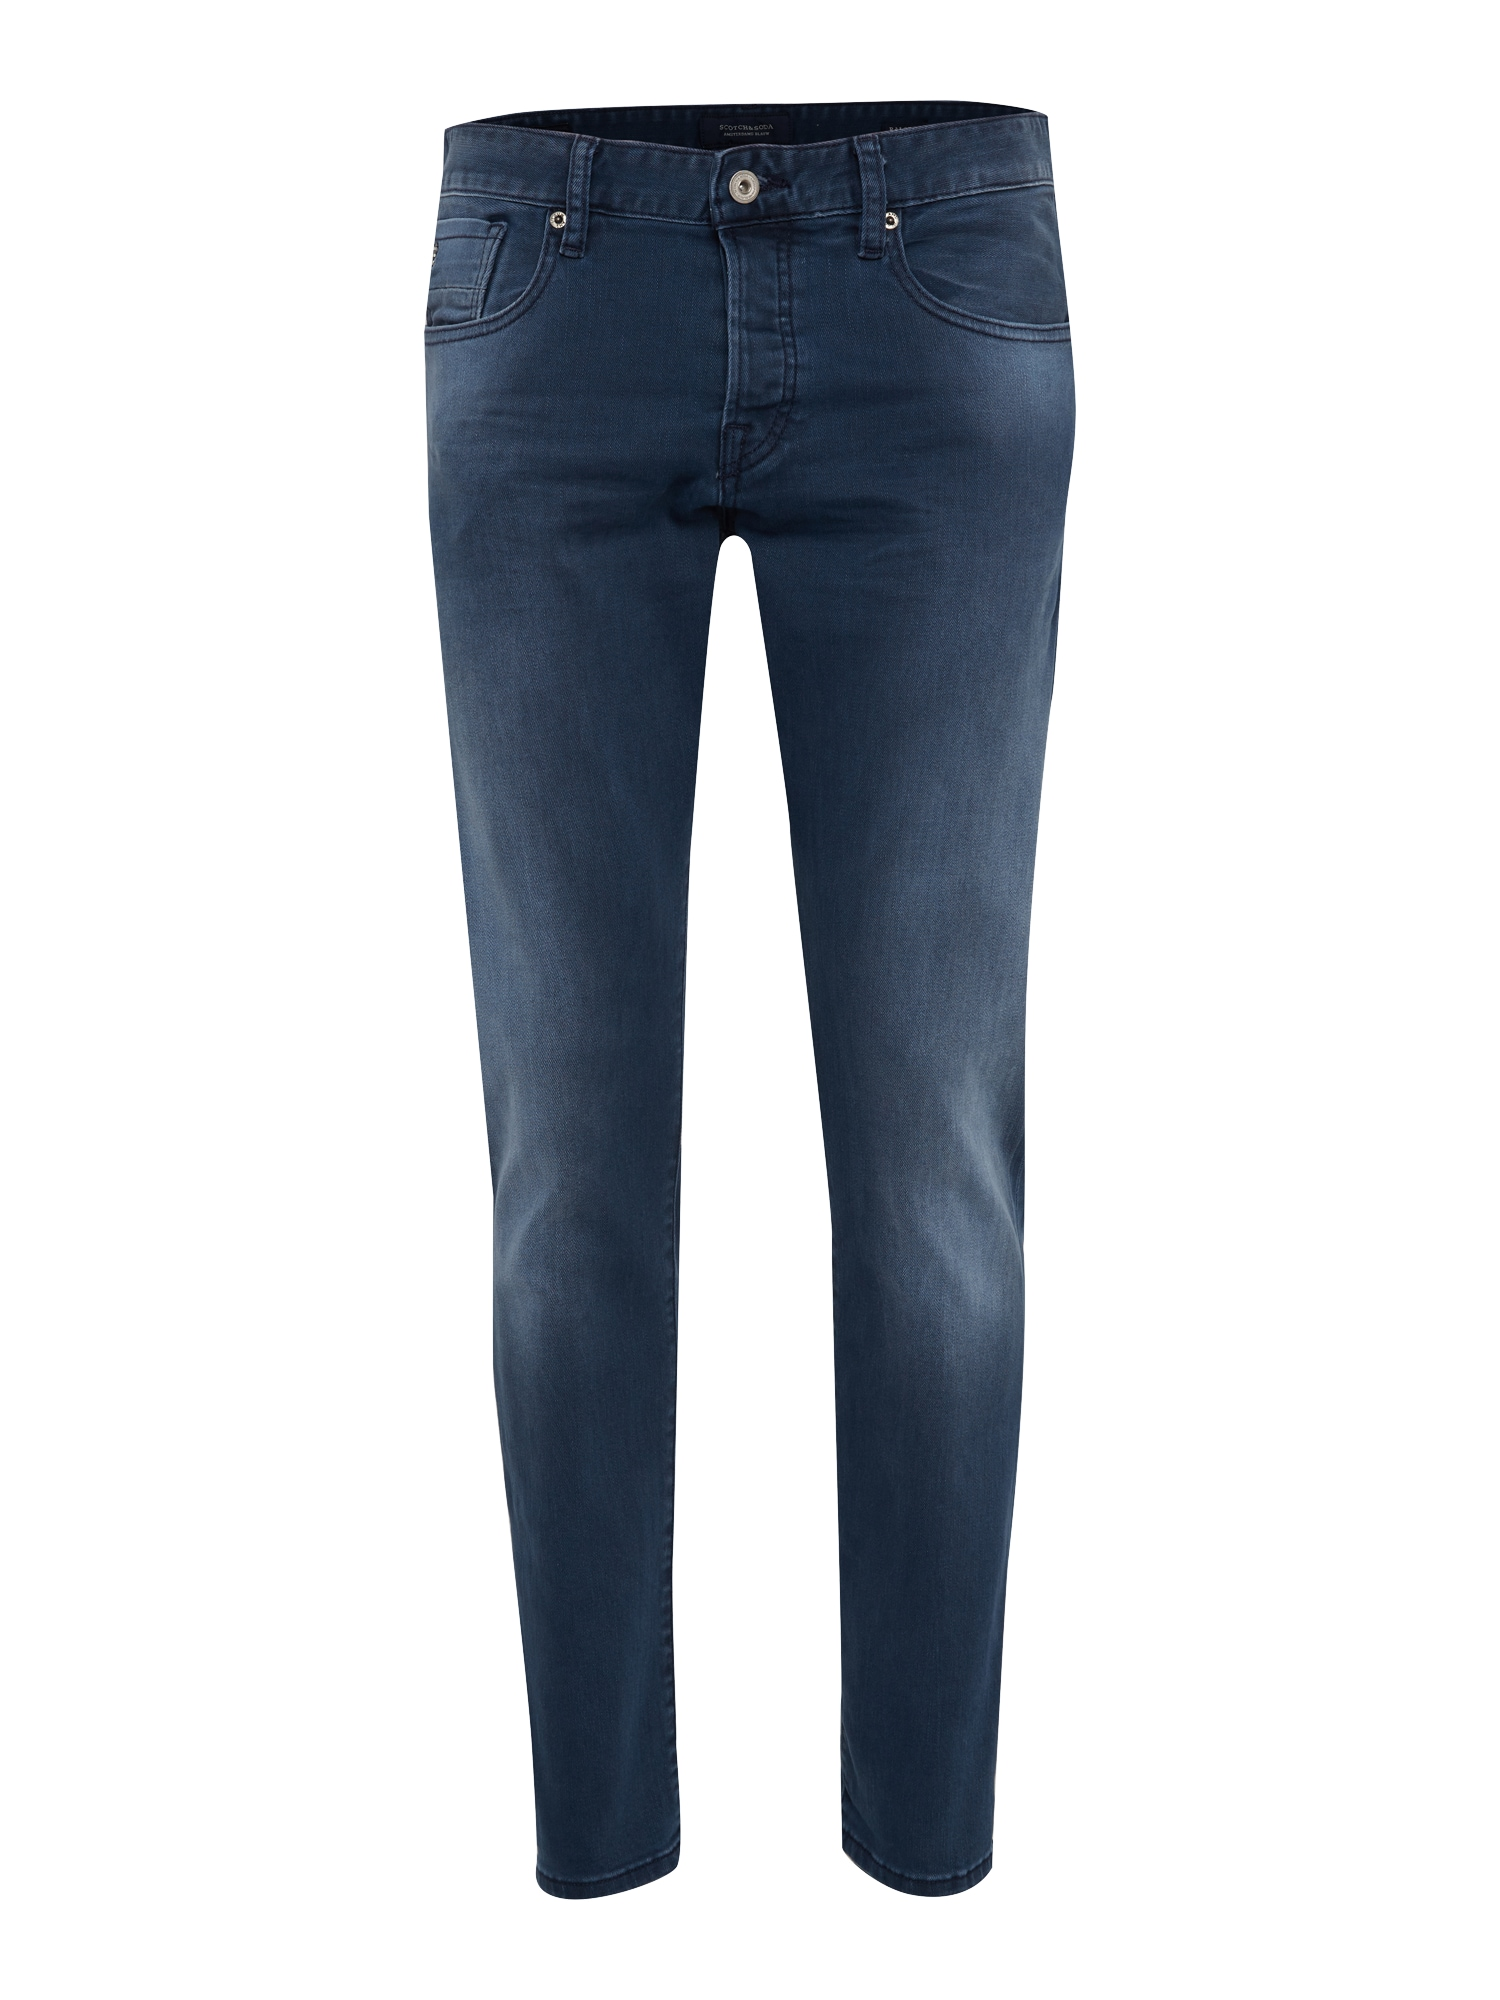 SCOTCH & SODA Džínsy 'NOS Ralston - Concrete Blues'  modrá denim